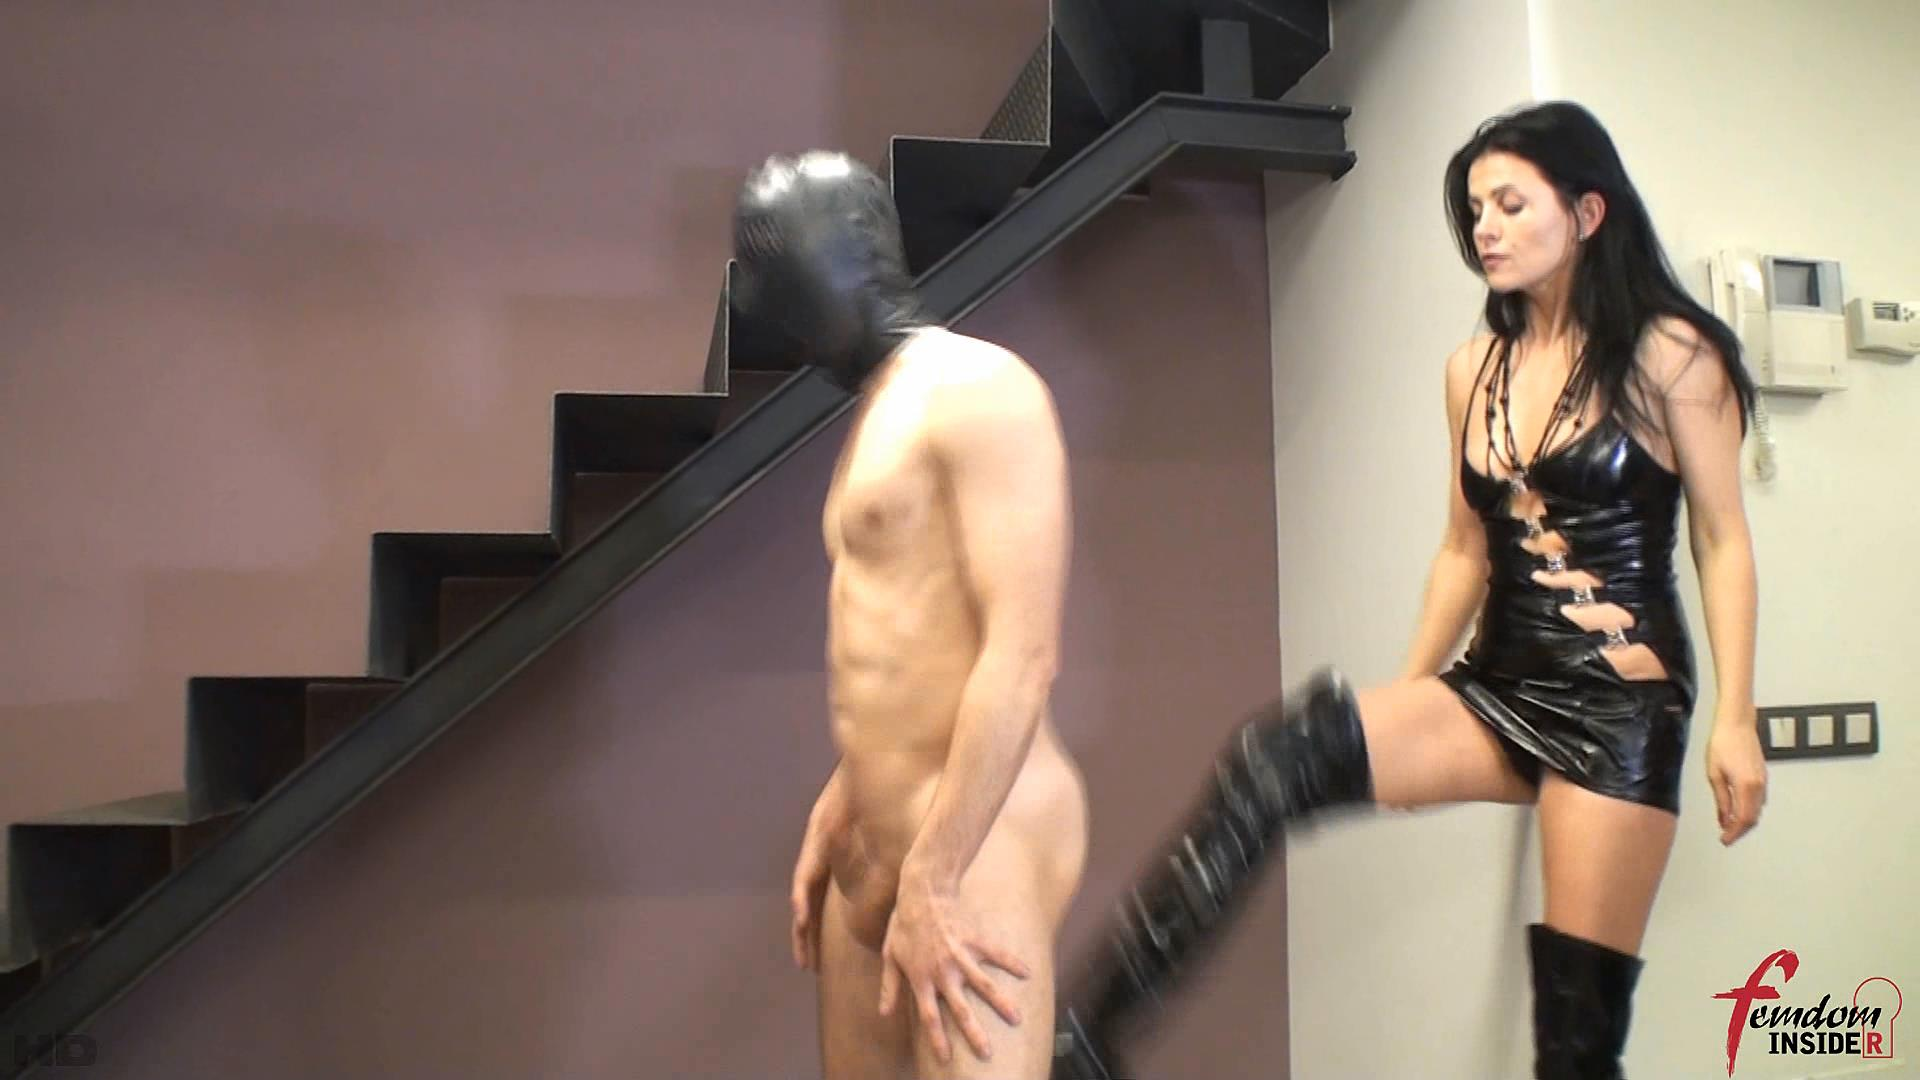 Mistress Soraya In Scene: No Mercy Ballkicking In Boots - FEMDOMINSIDER - FULL HD/1080p/WMV